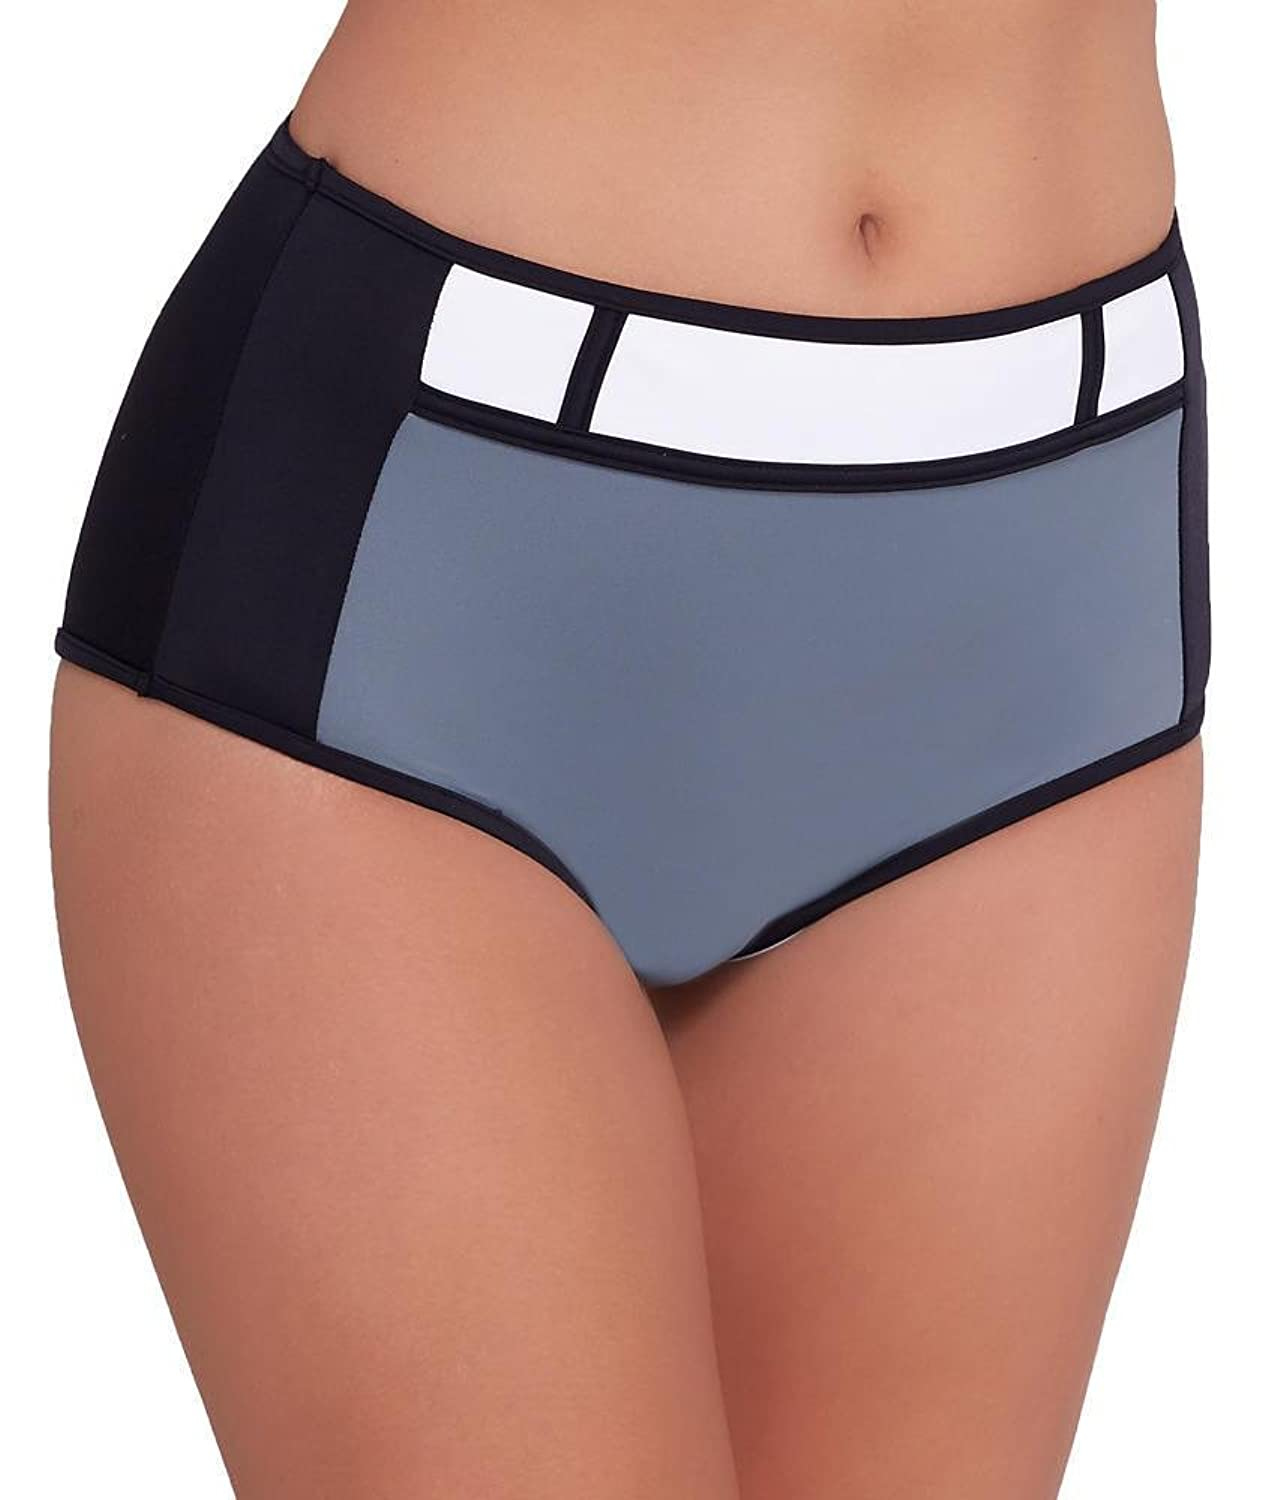 Freya Swim Bondi (B) Bikini Full brief